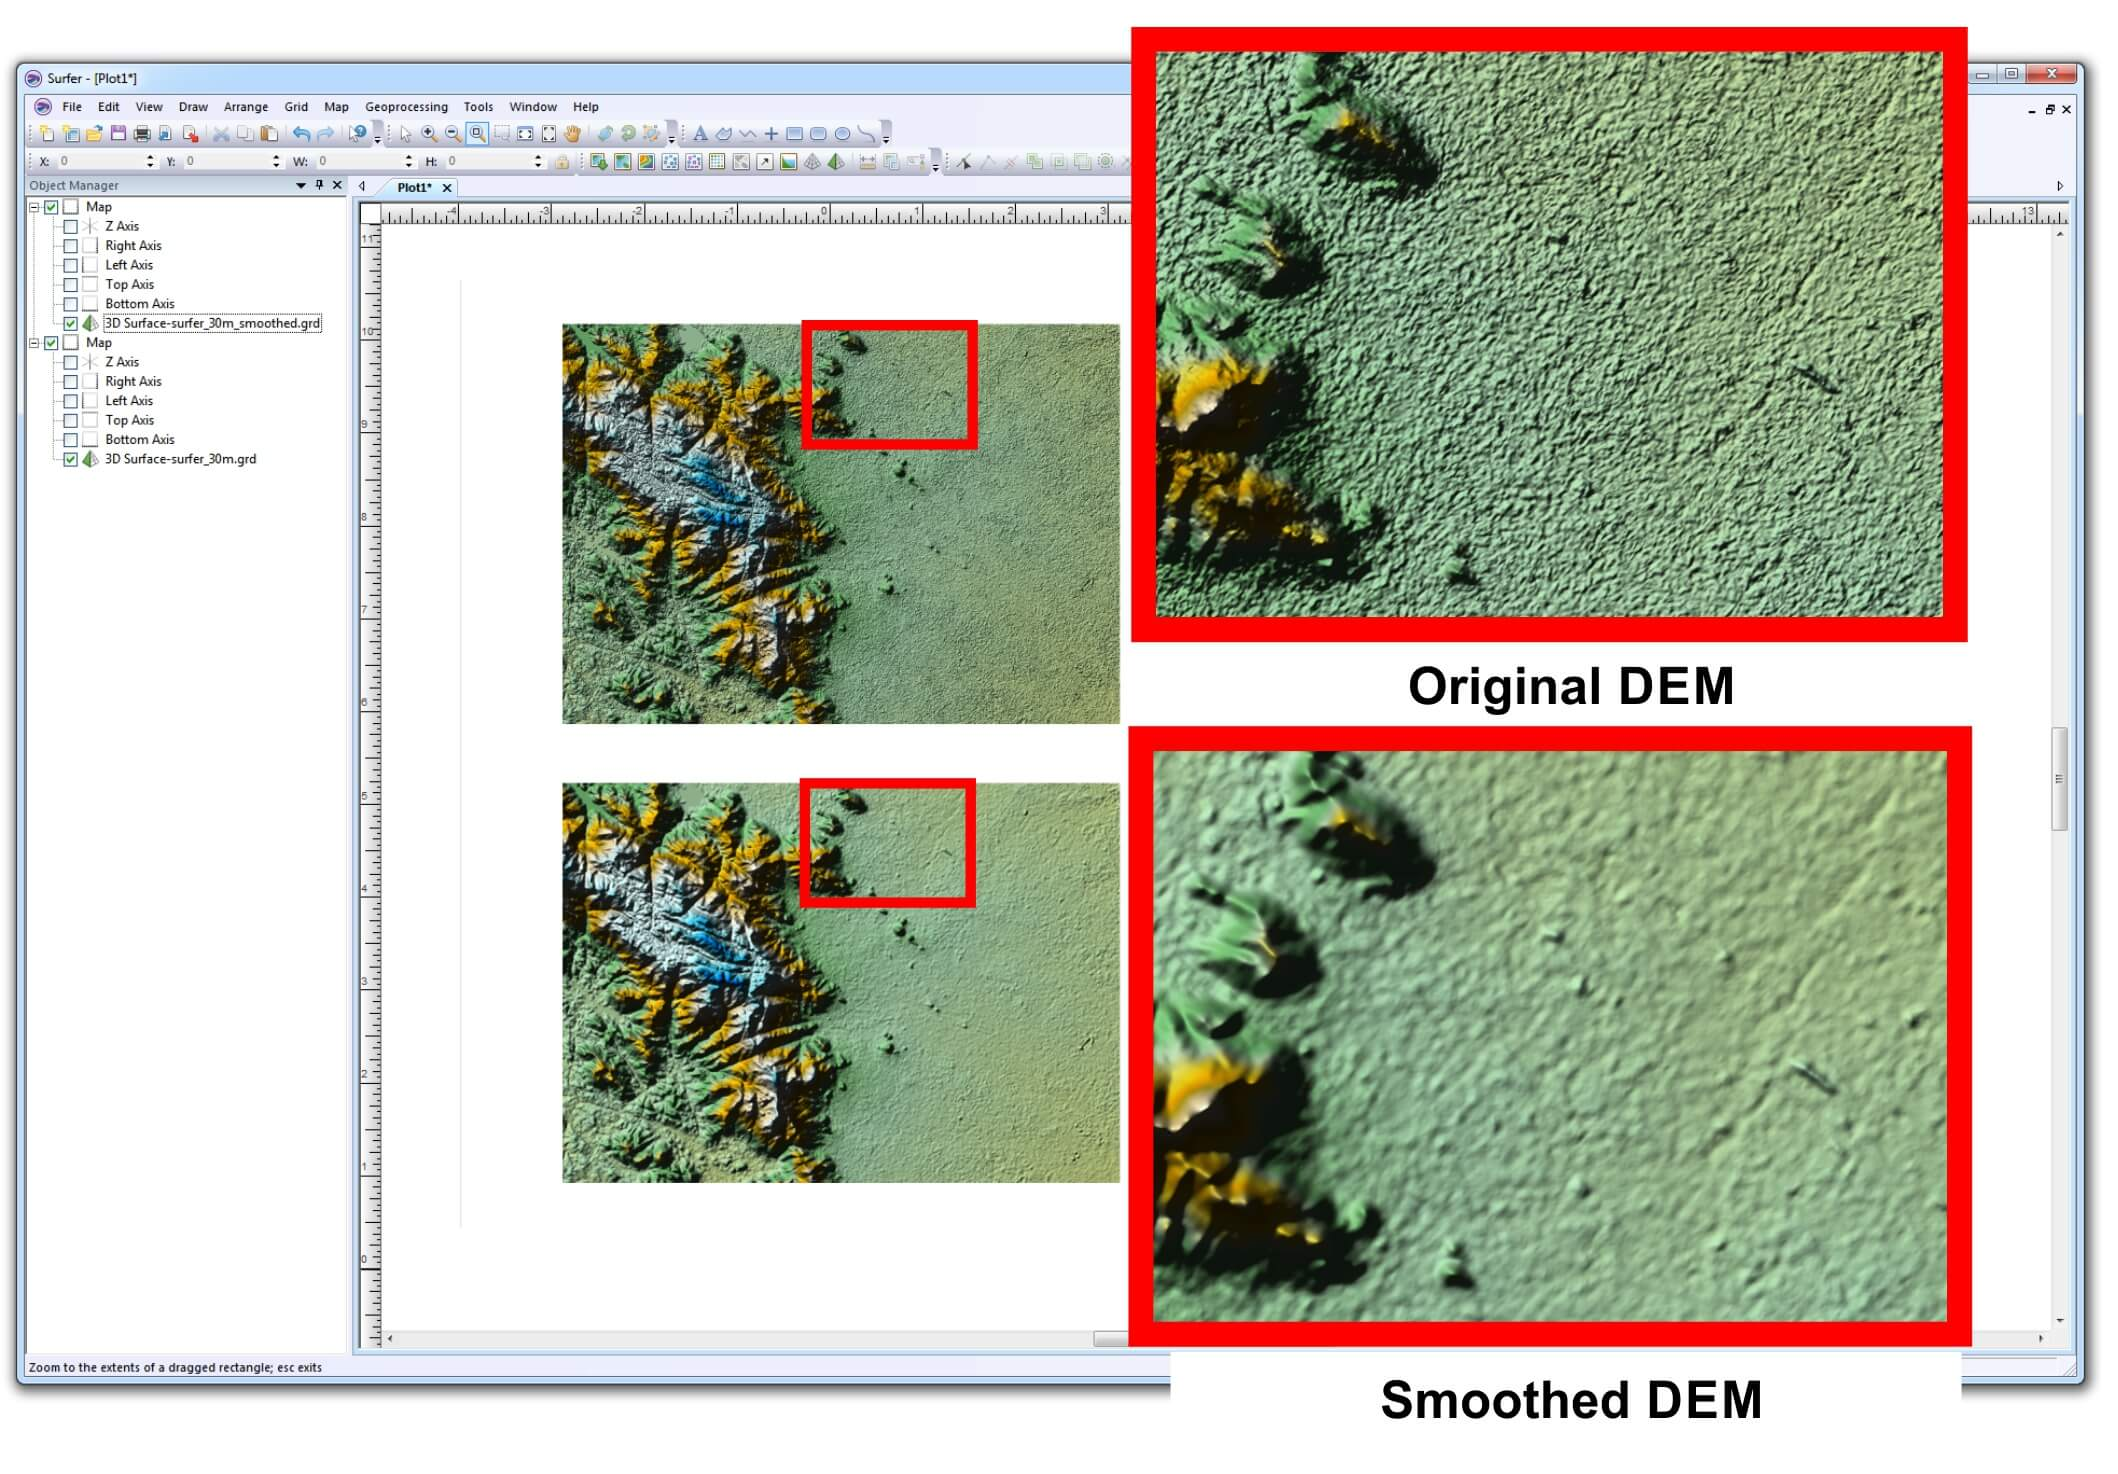 Surfer mapping software - smoothing elevation data (DEM) before and after